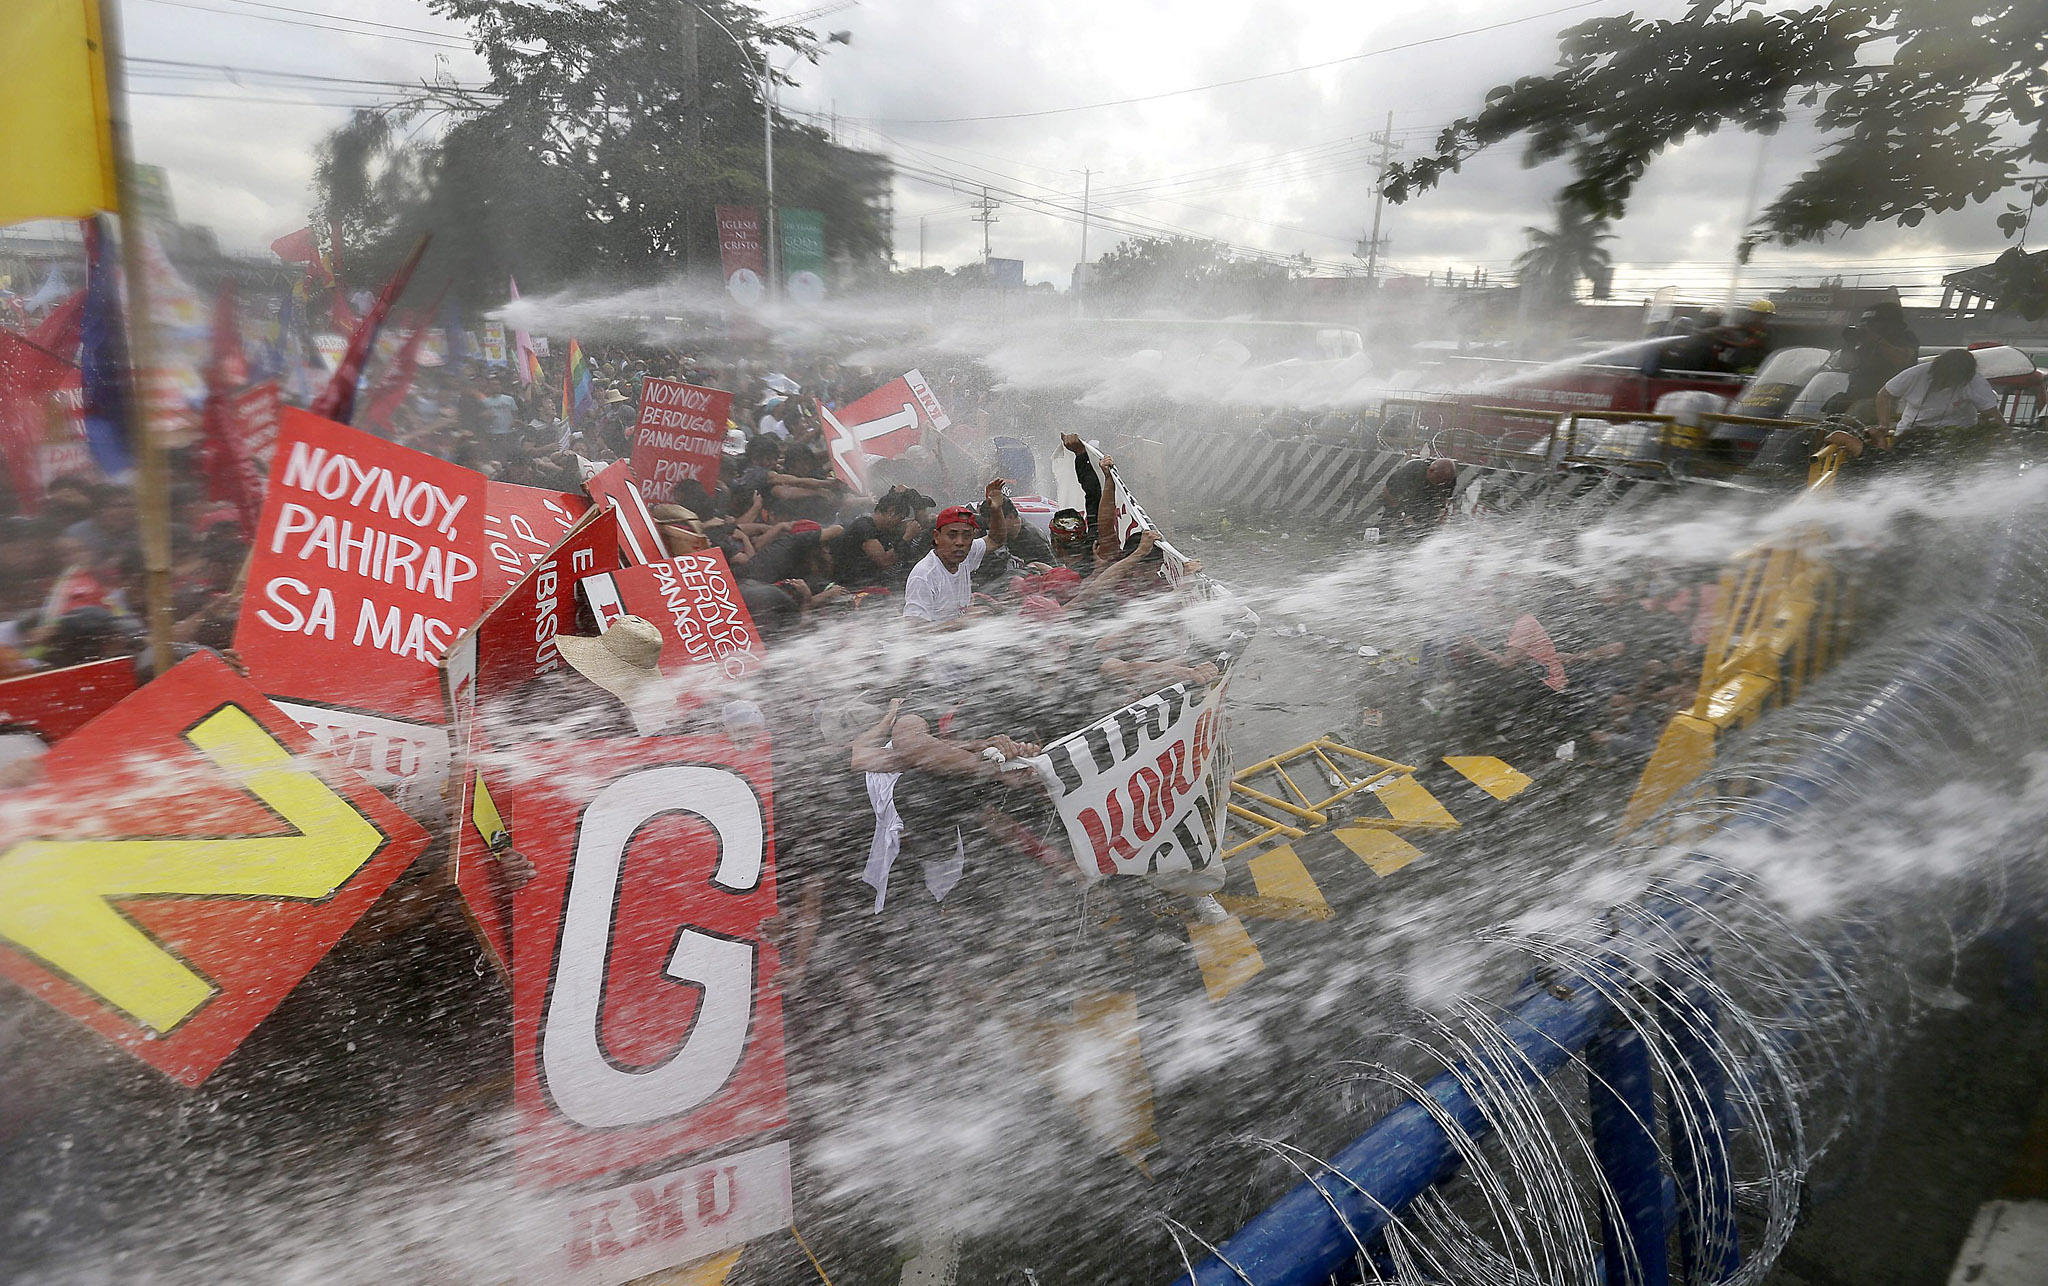 Protesters clash with riot police during President Aquino III's state of the nation address...epa04333631 Filipino anti-riot policemen use water cannon to disperse protestors attempting to reach the Philippine Congress in Quezon City, east of Manila, Philippines, 28 July 2014, during the state of the nation address (SONA) by Philippine president Benigno Aquino III. Thousands of protesters took to the streets in the Philippine capital , police said, during    President Benigno Aquino's annual state of the nation address.Police blocked off a main road leading to the House of Representatives compound in the Manila suburban city of Quezon, forcing the demonstrators to gather about three kilometres away. They brought an effigy of Aquino as a thief, accusing him of reneging on a vow to fight corruption by implementing an economic stimulus programme that allows for the discretionary distribution of state funds. The more than 3-billion-dollar programme was ruled unconstitutional by the Supreme Court, but Aquino's government appealed that decision.  EPA/DENNIS M. SABANGAN